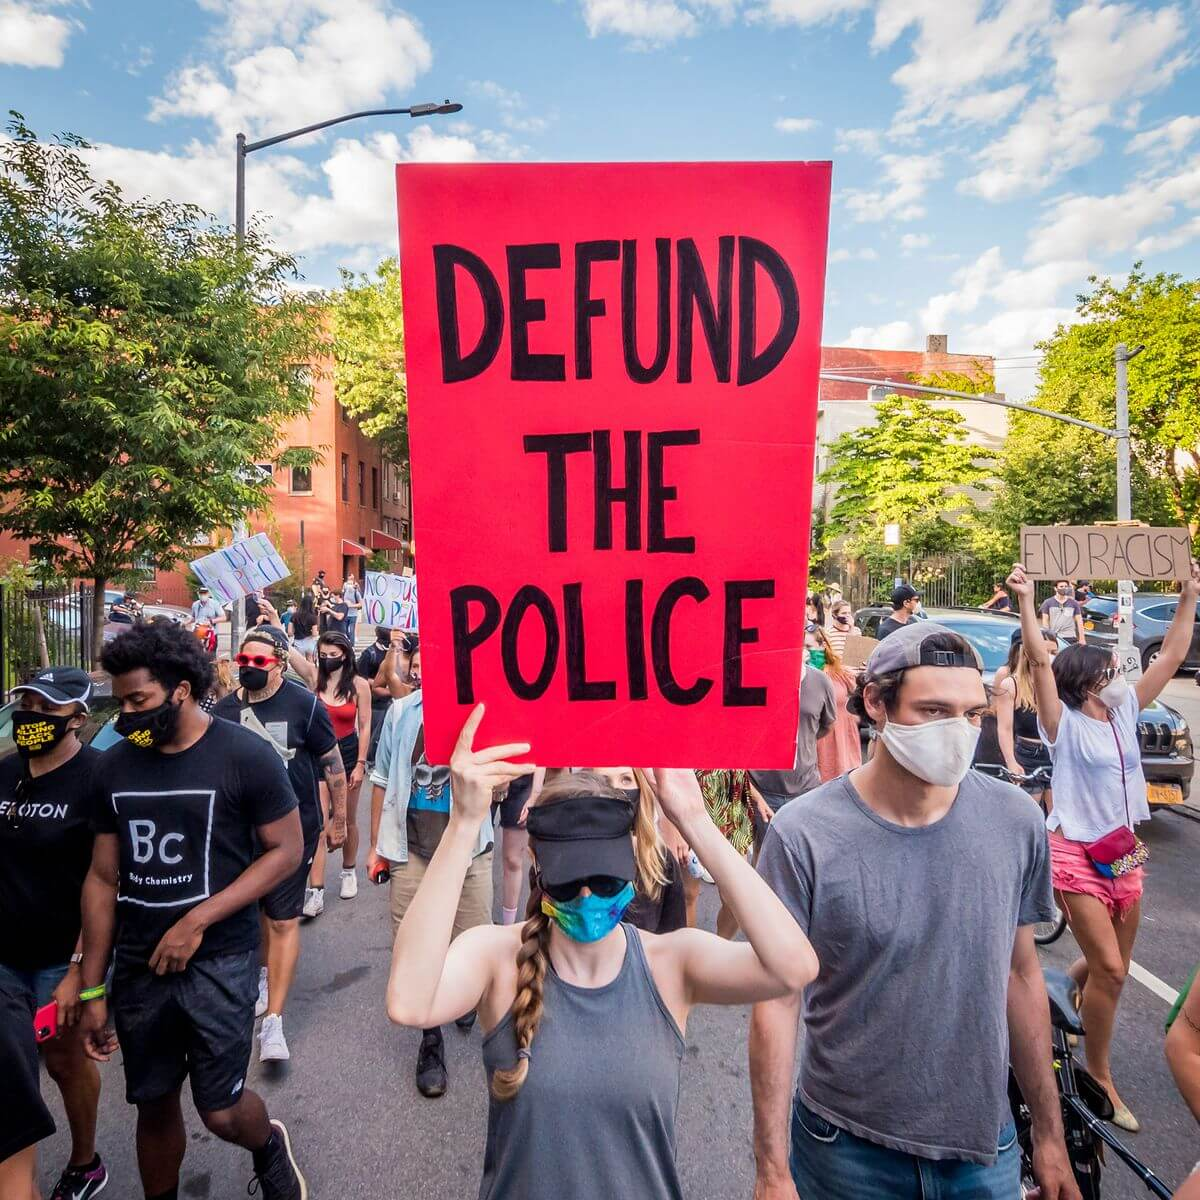 Protests against police brutality